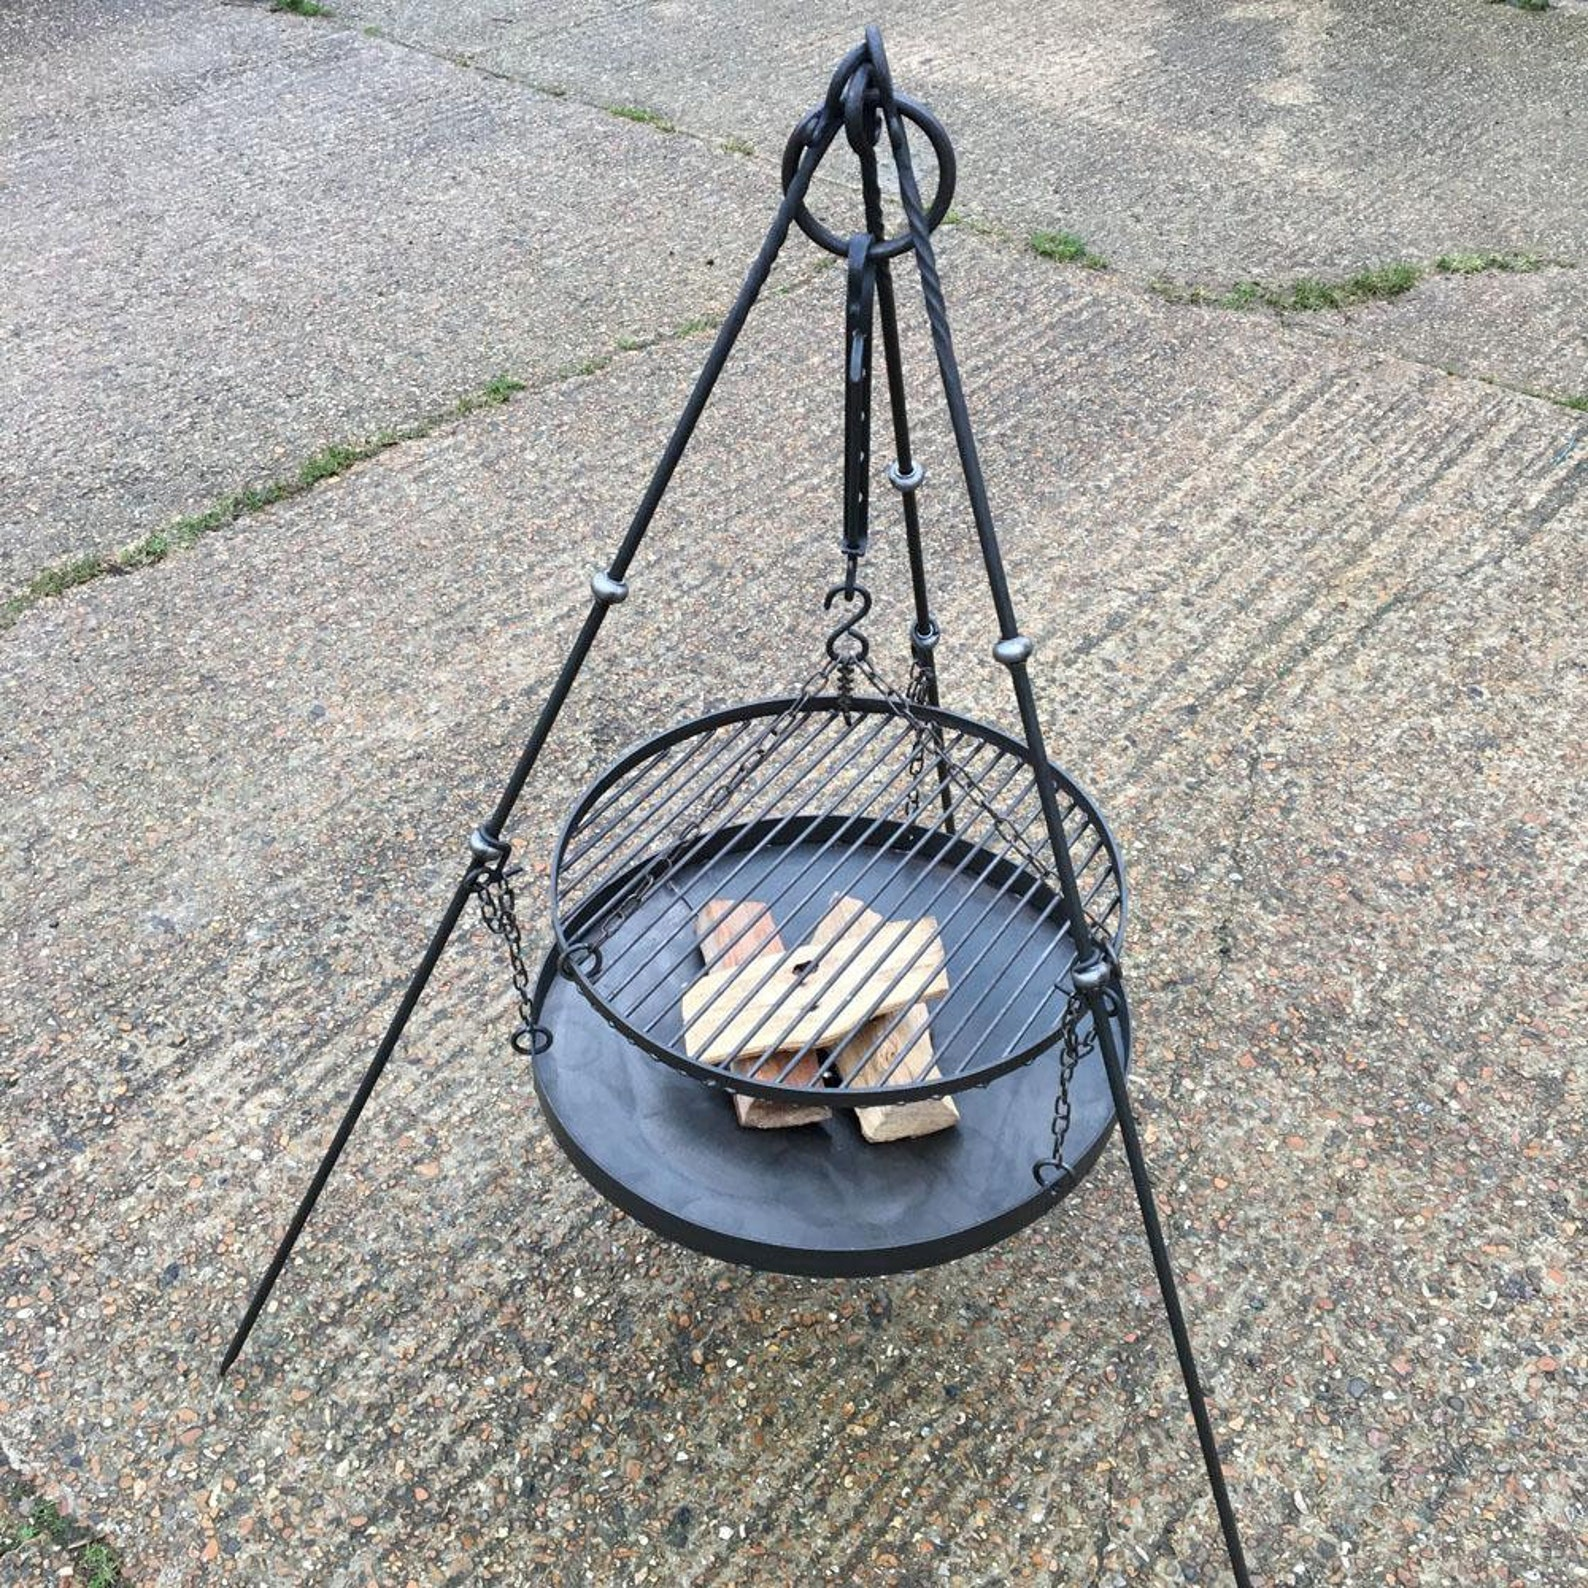 Campfire Cooking Tripod Firepit Set with Grill